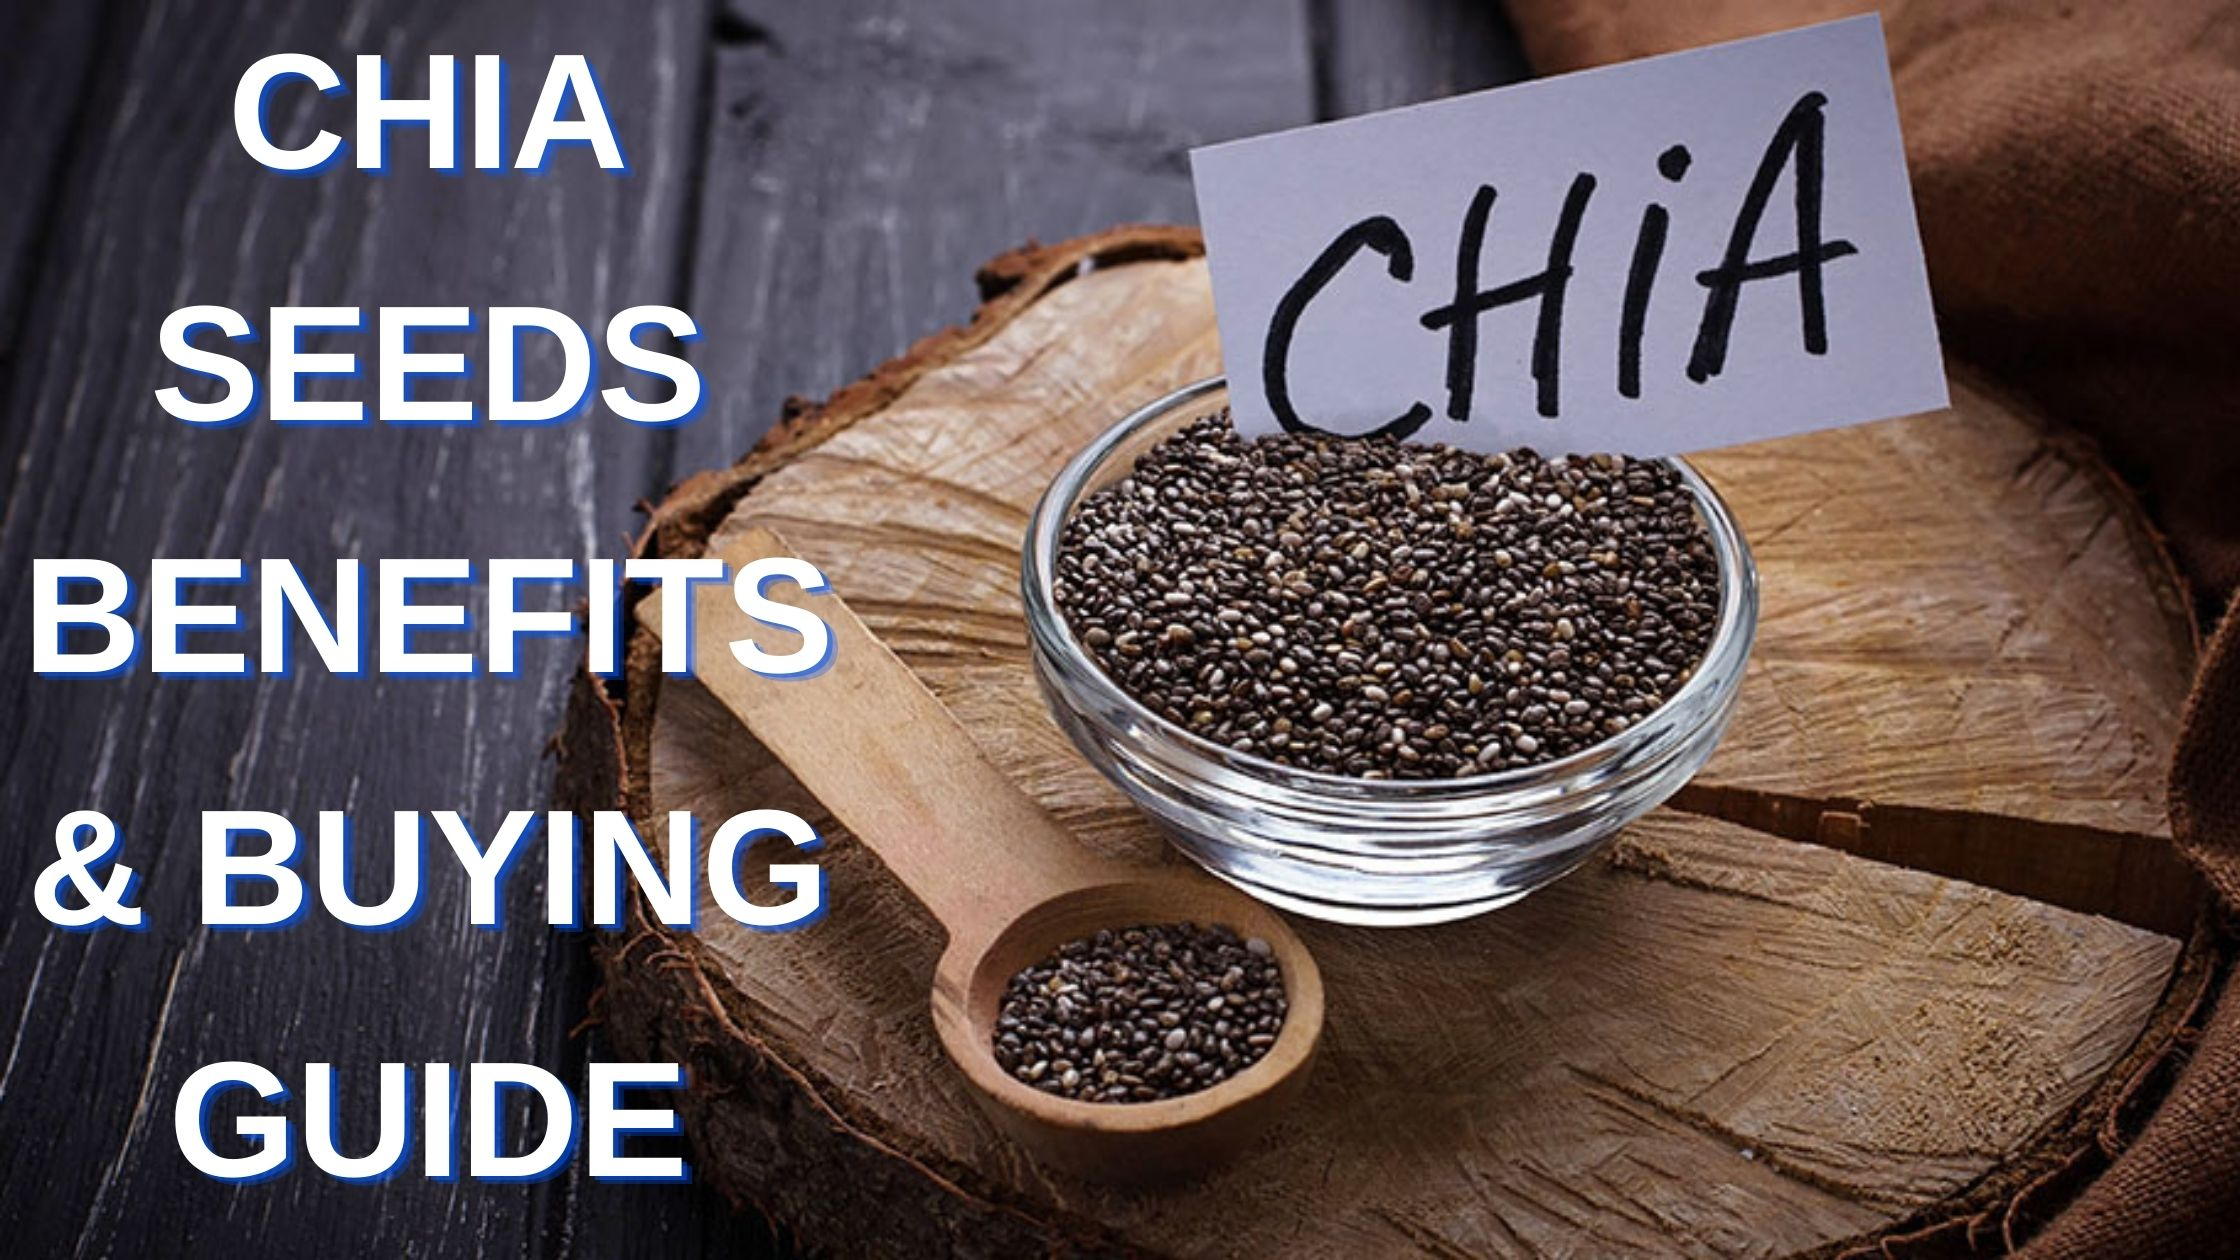 Chia Seeds recipe, benefits, side effects, buying guide.